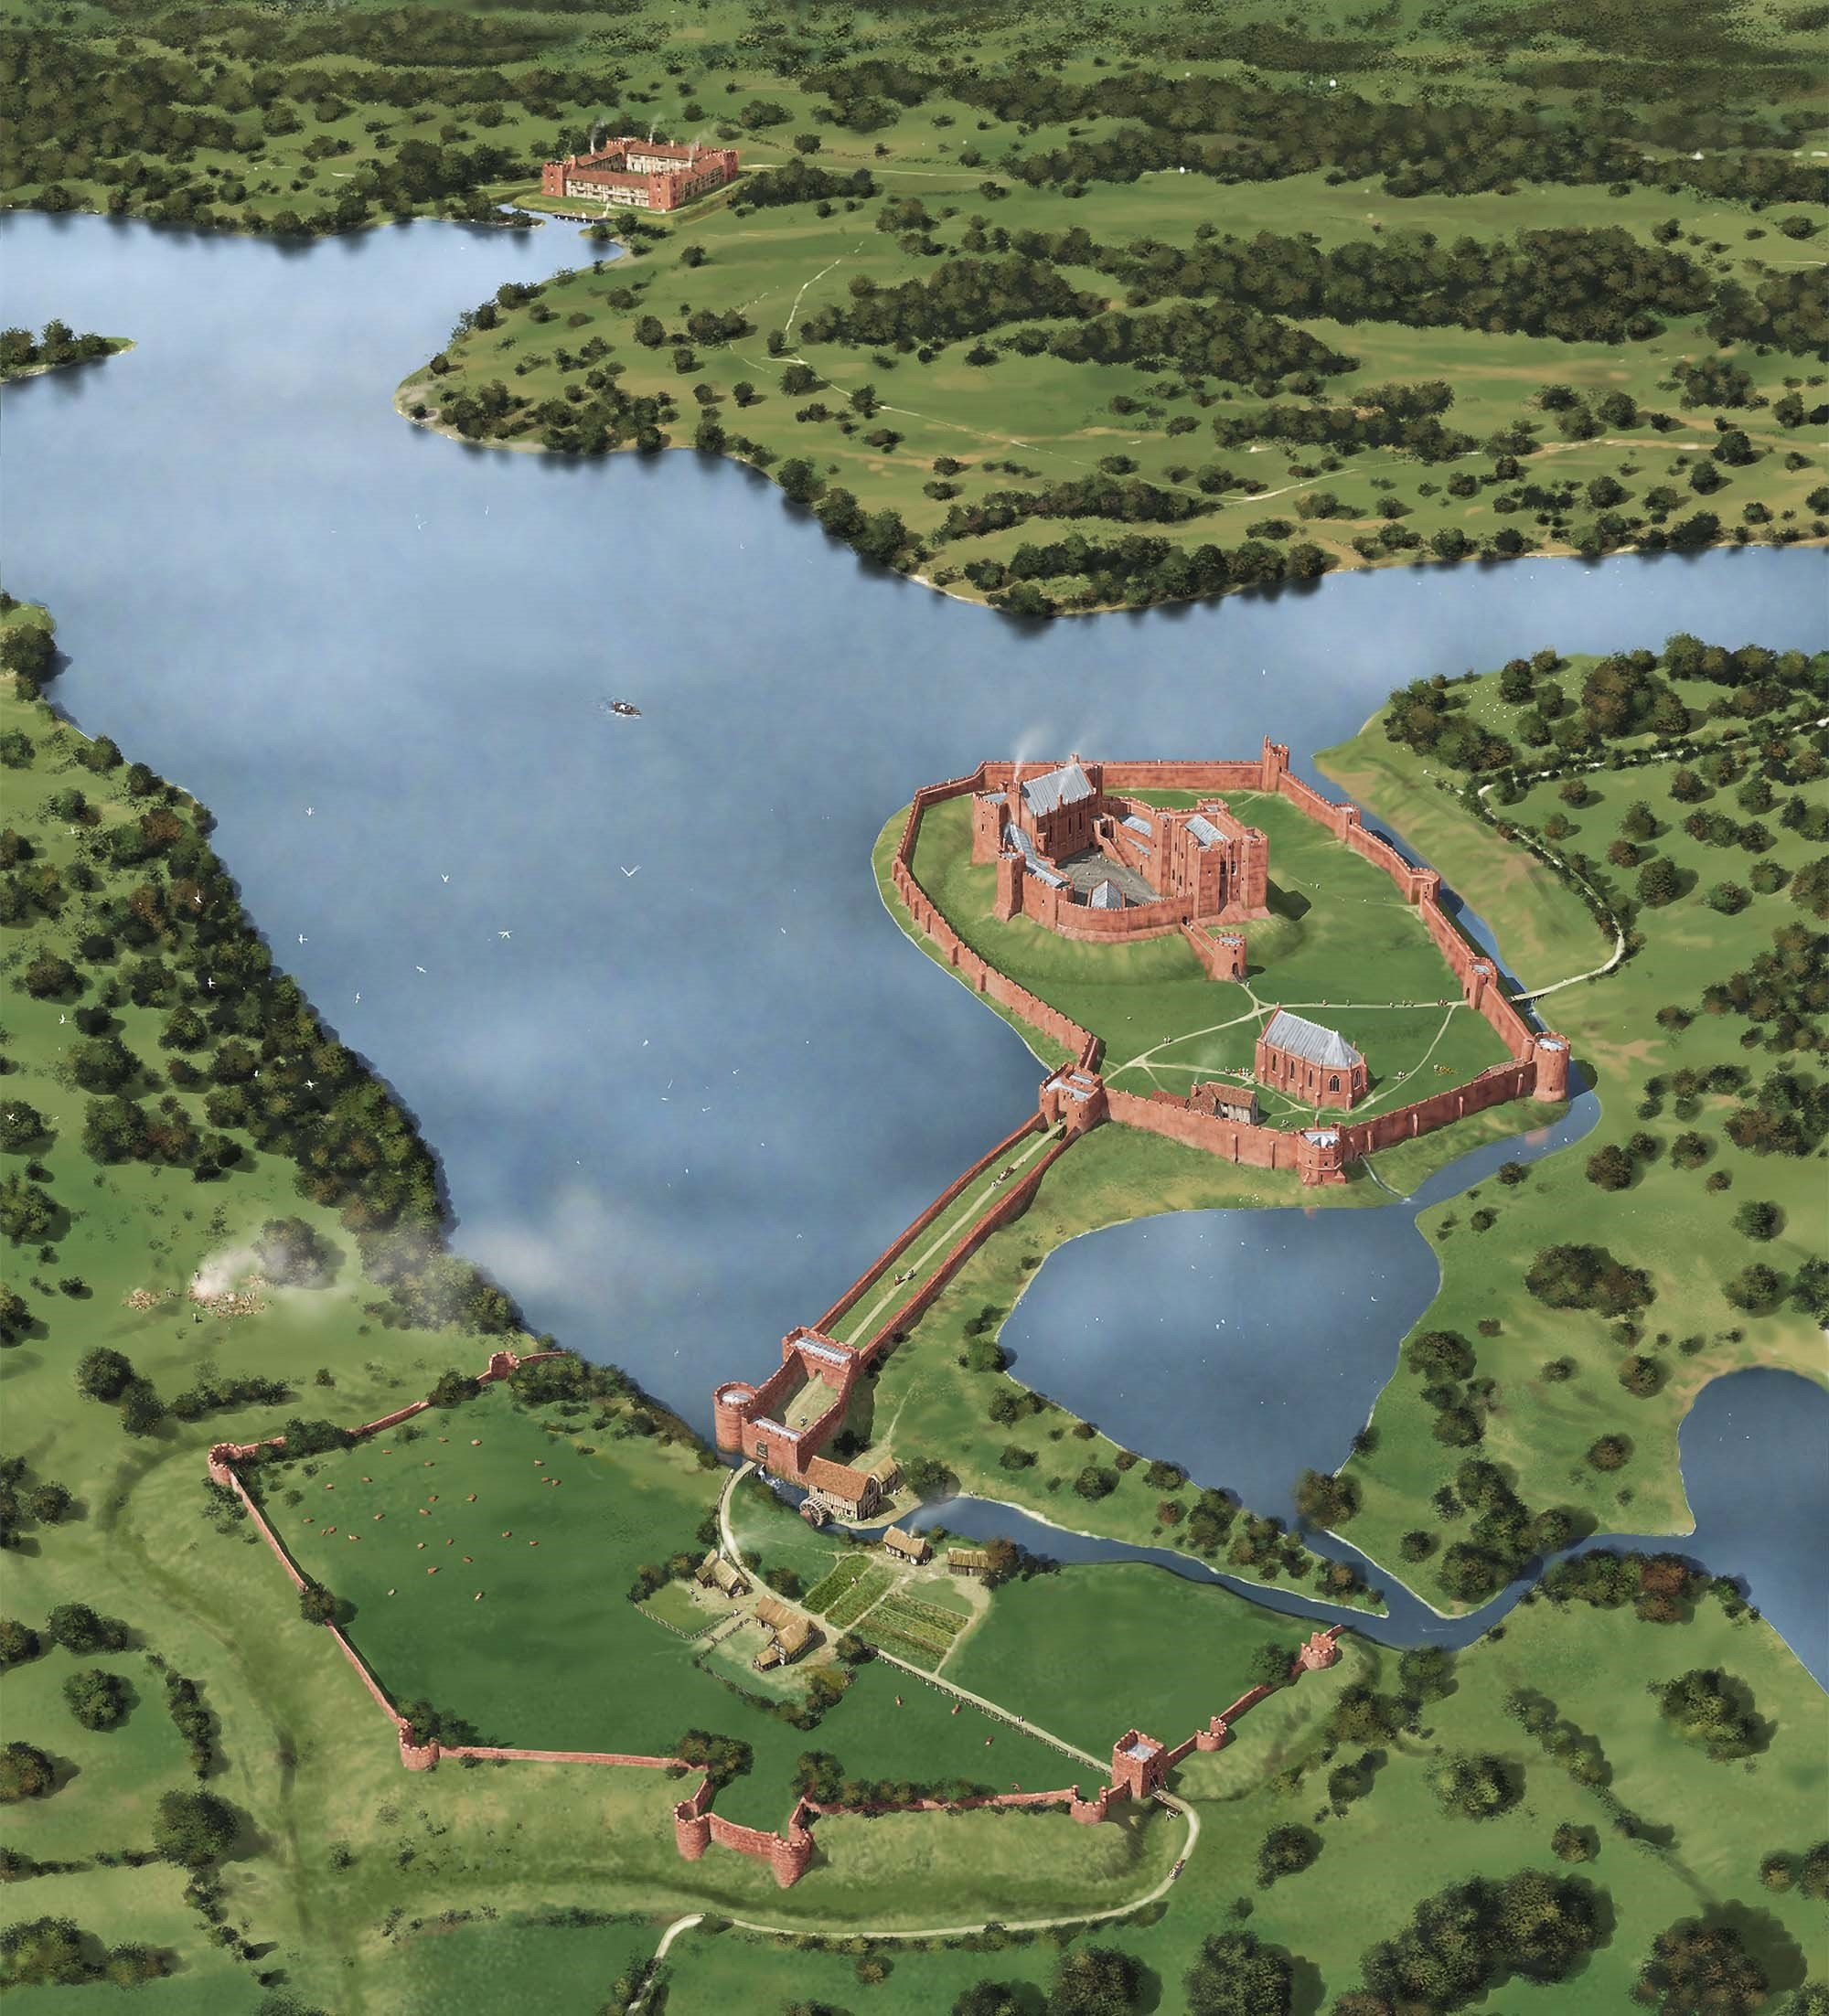 A reconstruction of Kenilworth Castle as it might have appeared in about 1420, showing John of Gaunt